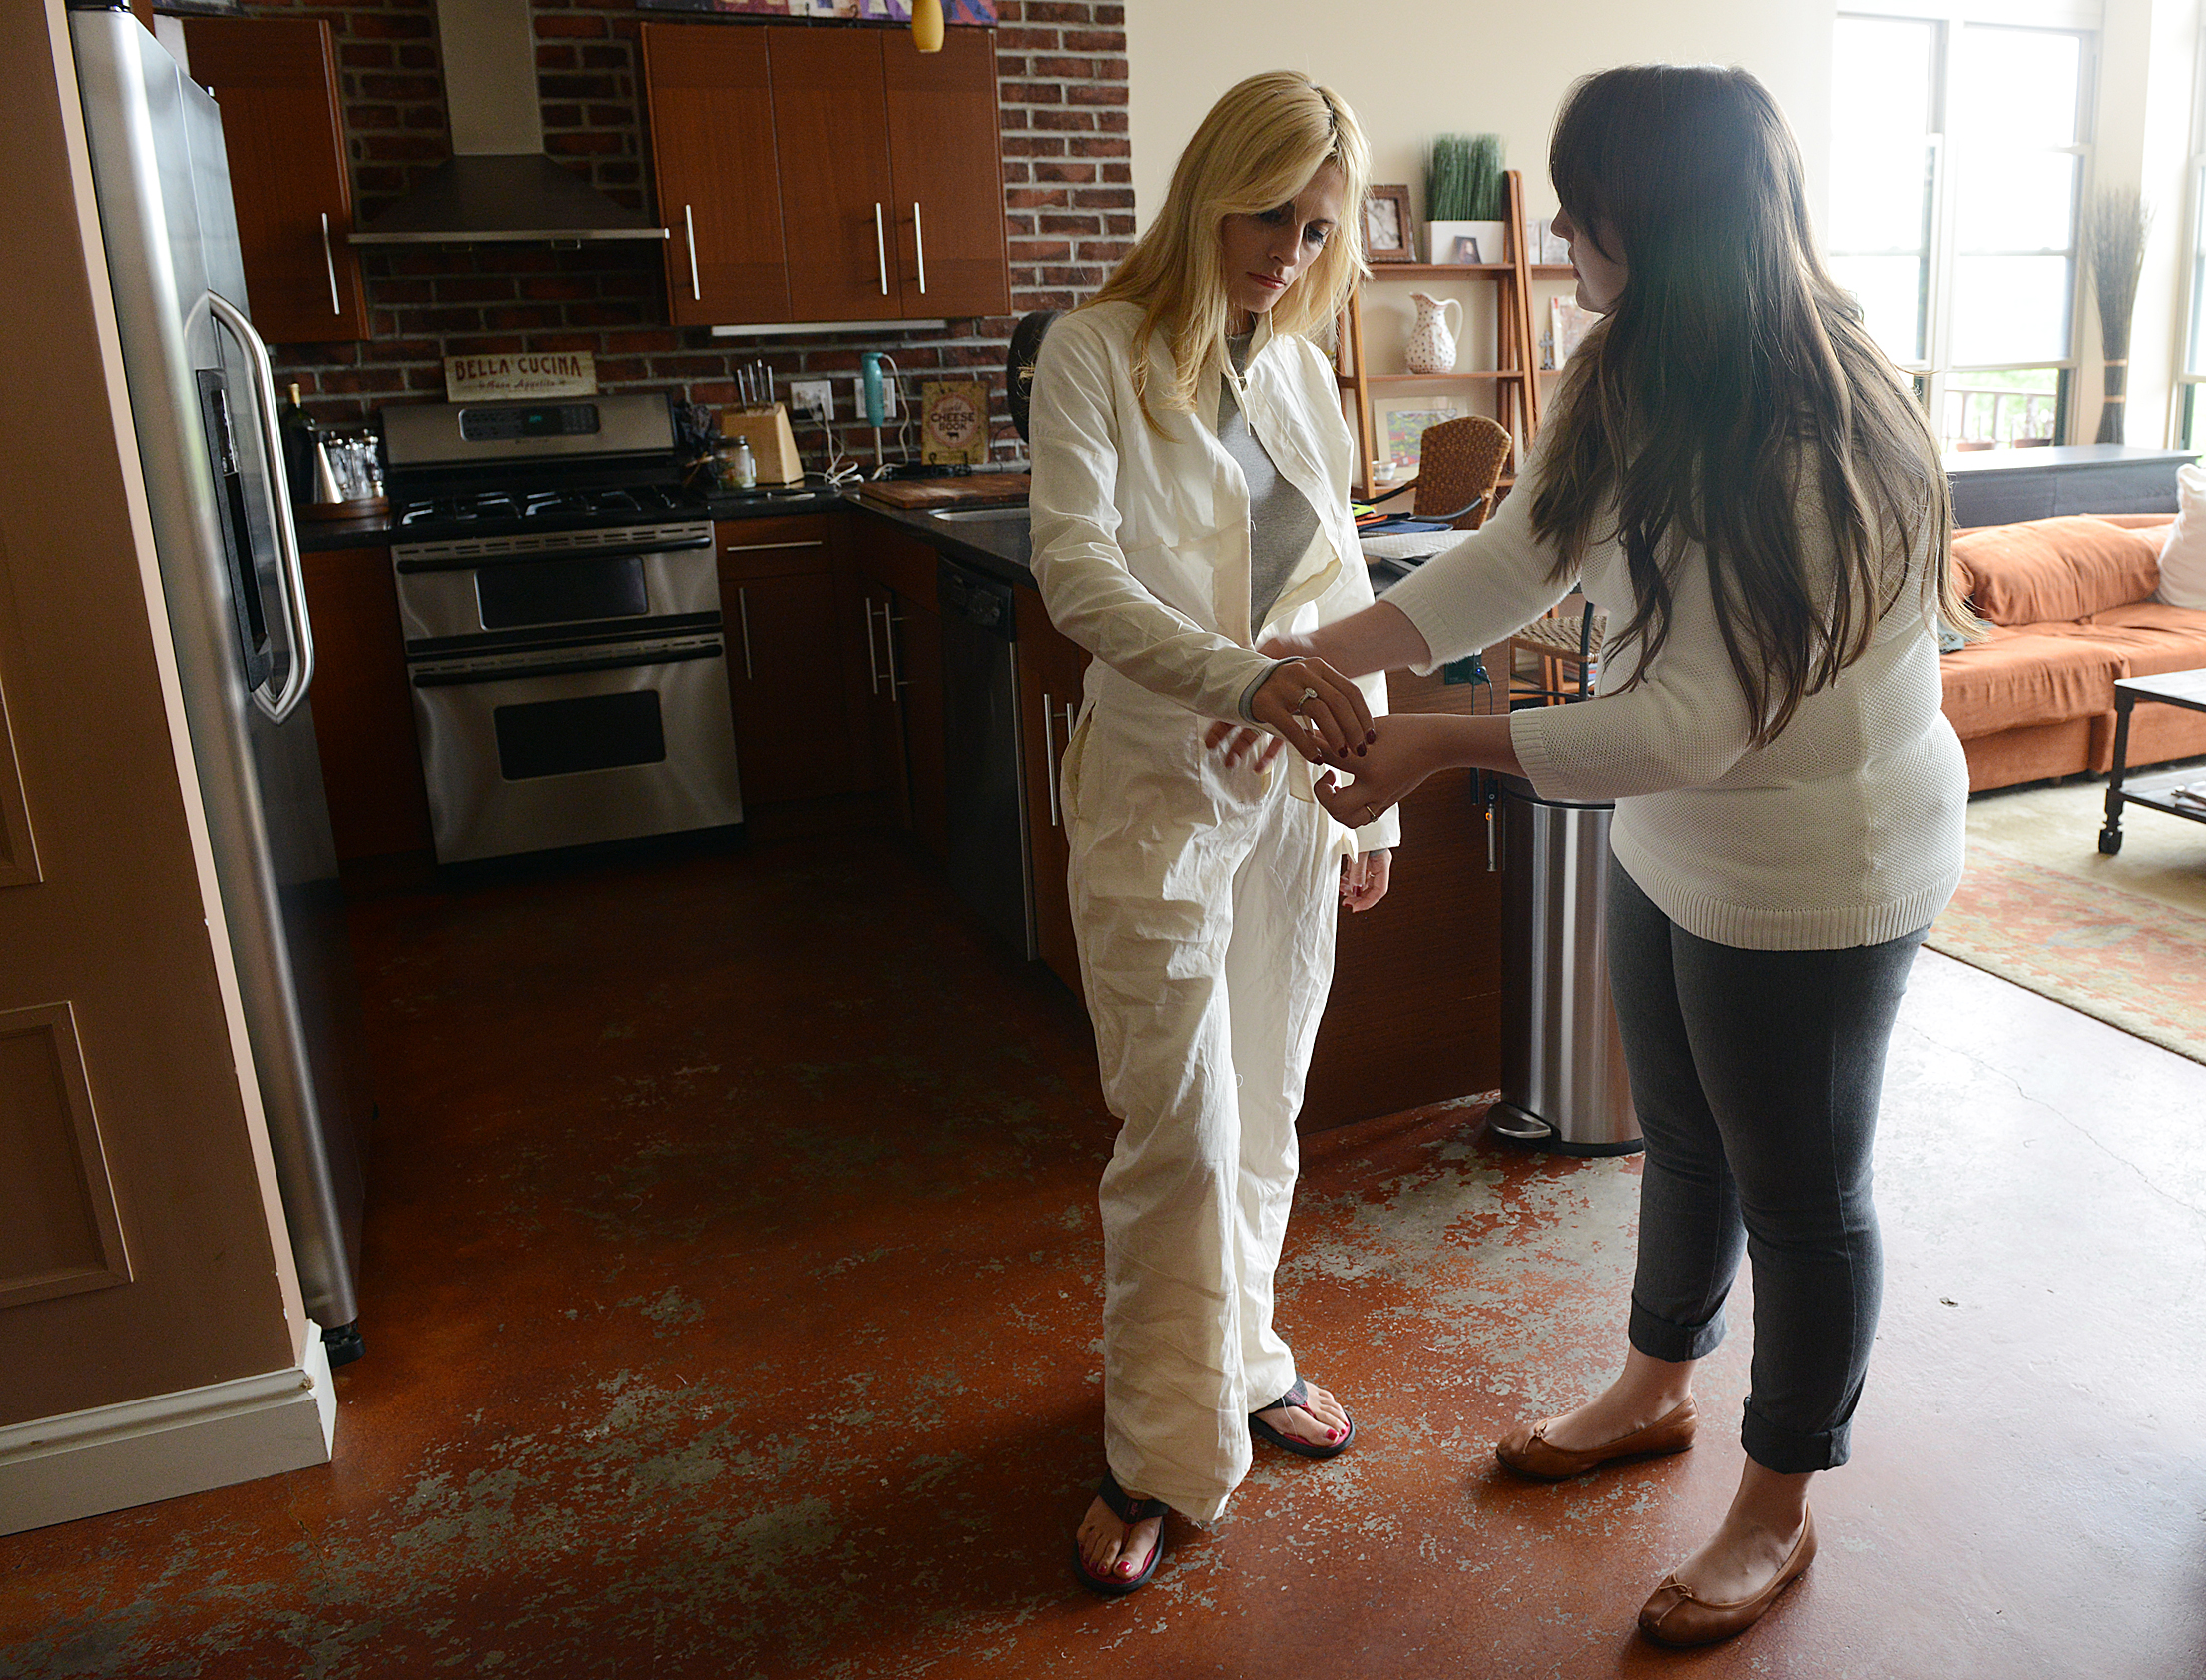 20140605rldFireWithin03-2 Amelia Papapetropoulos, left, is working with designer Christina Knieriem, to create the first sample of a fire resistant coverall made specifically to be flattering for women.